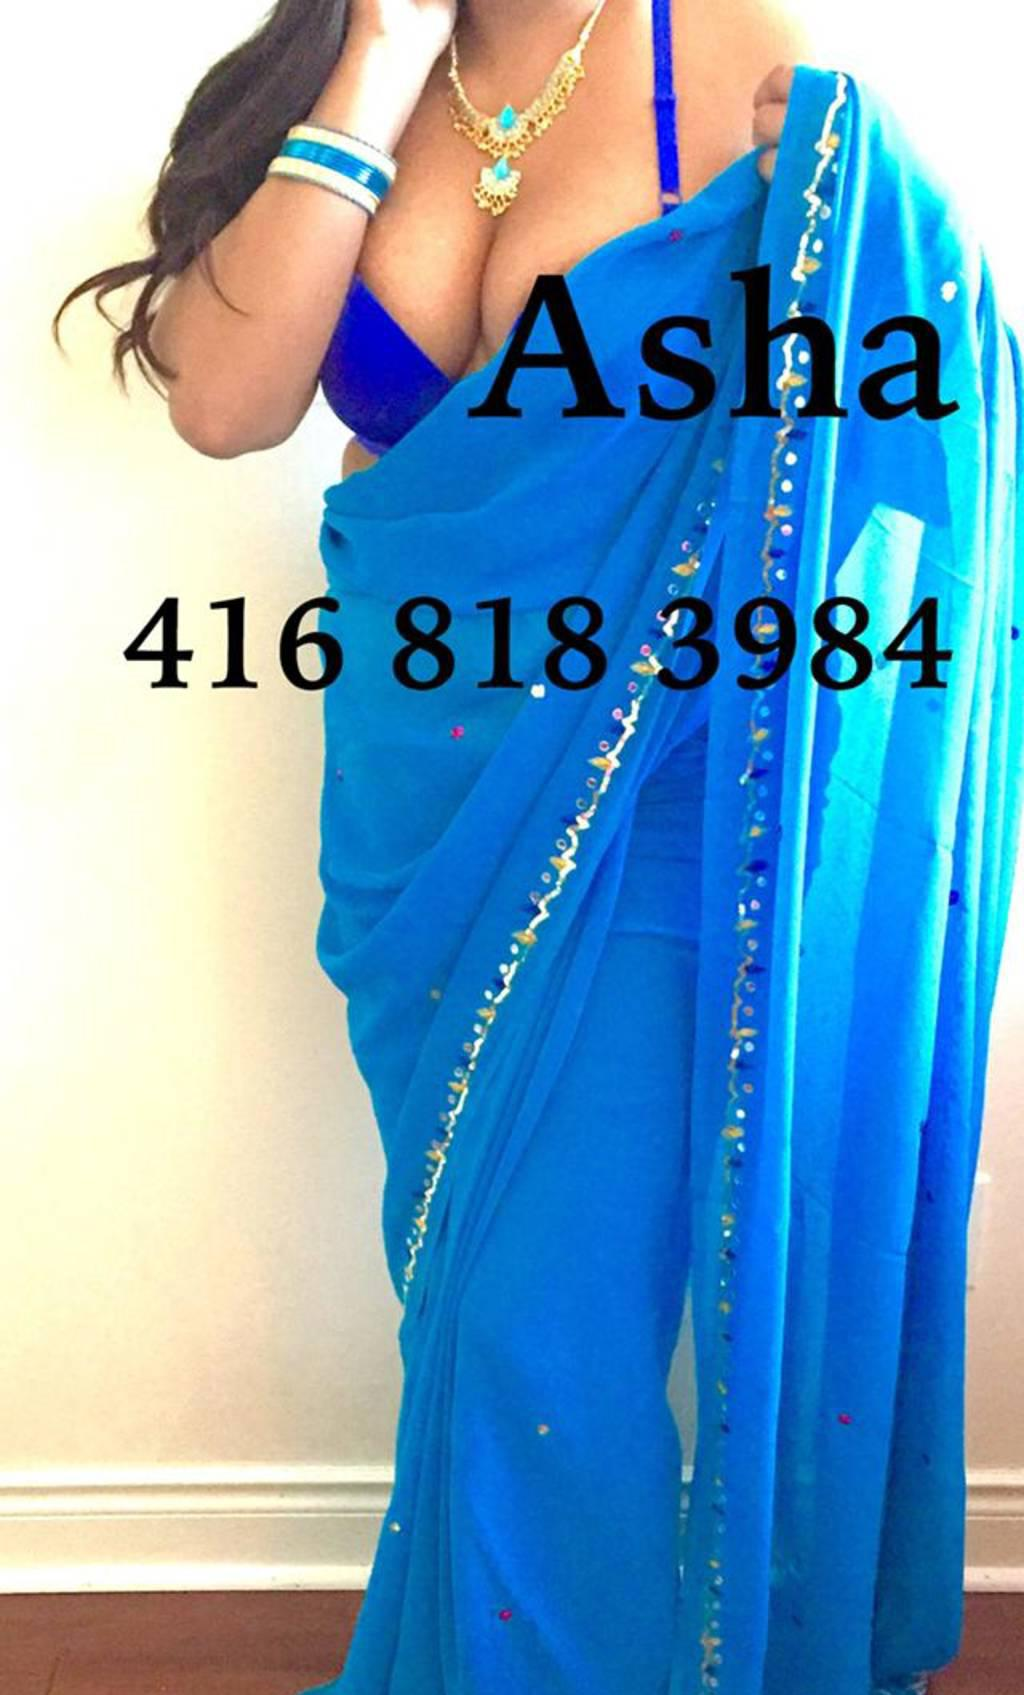 Asha Escorts Offering Sex In Dubai